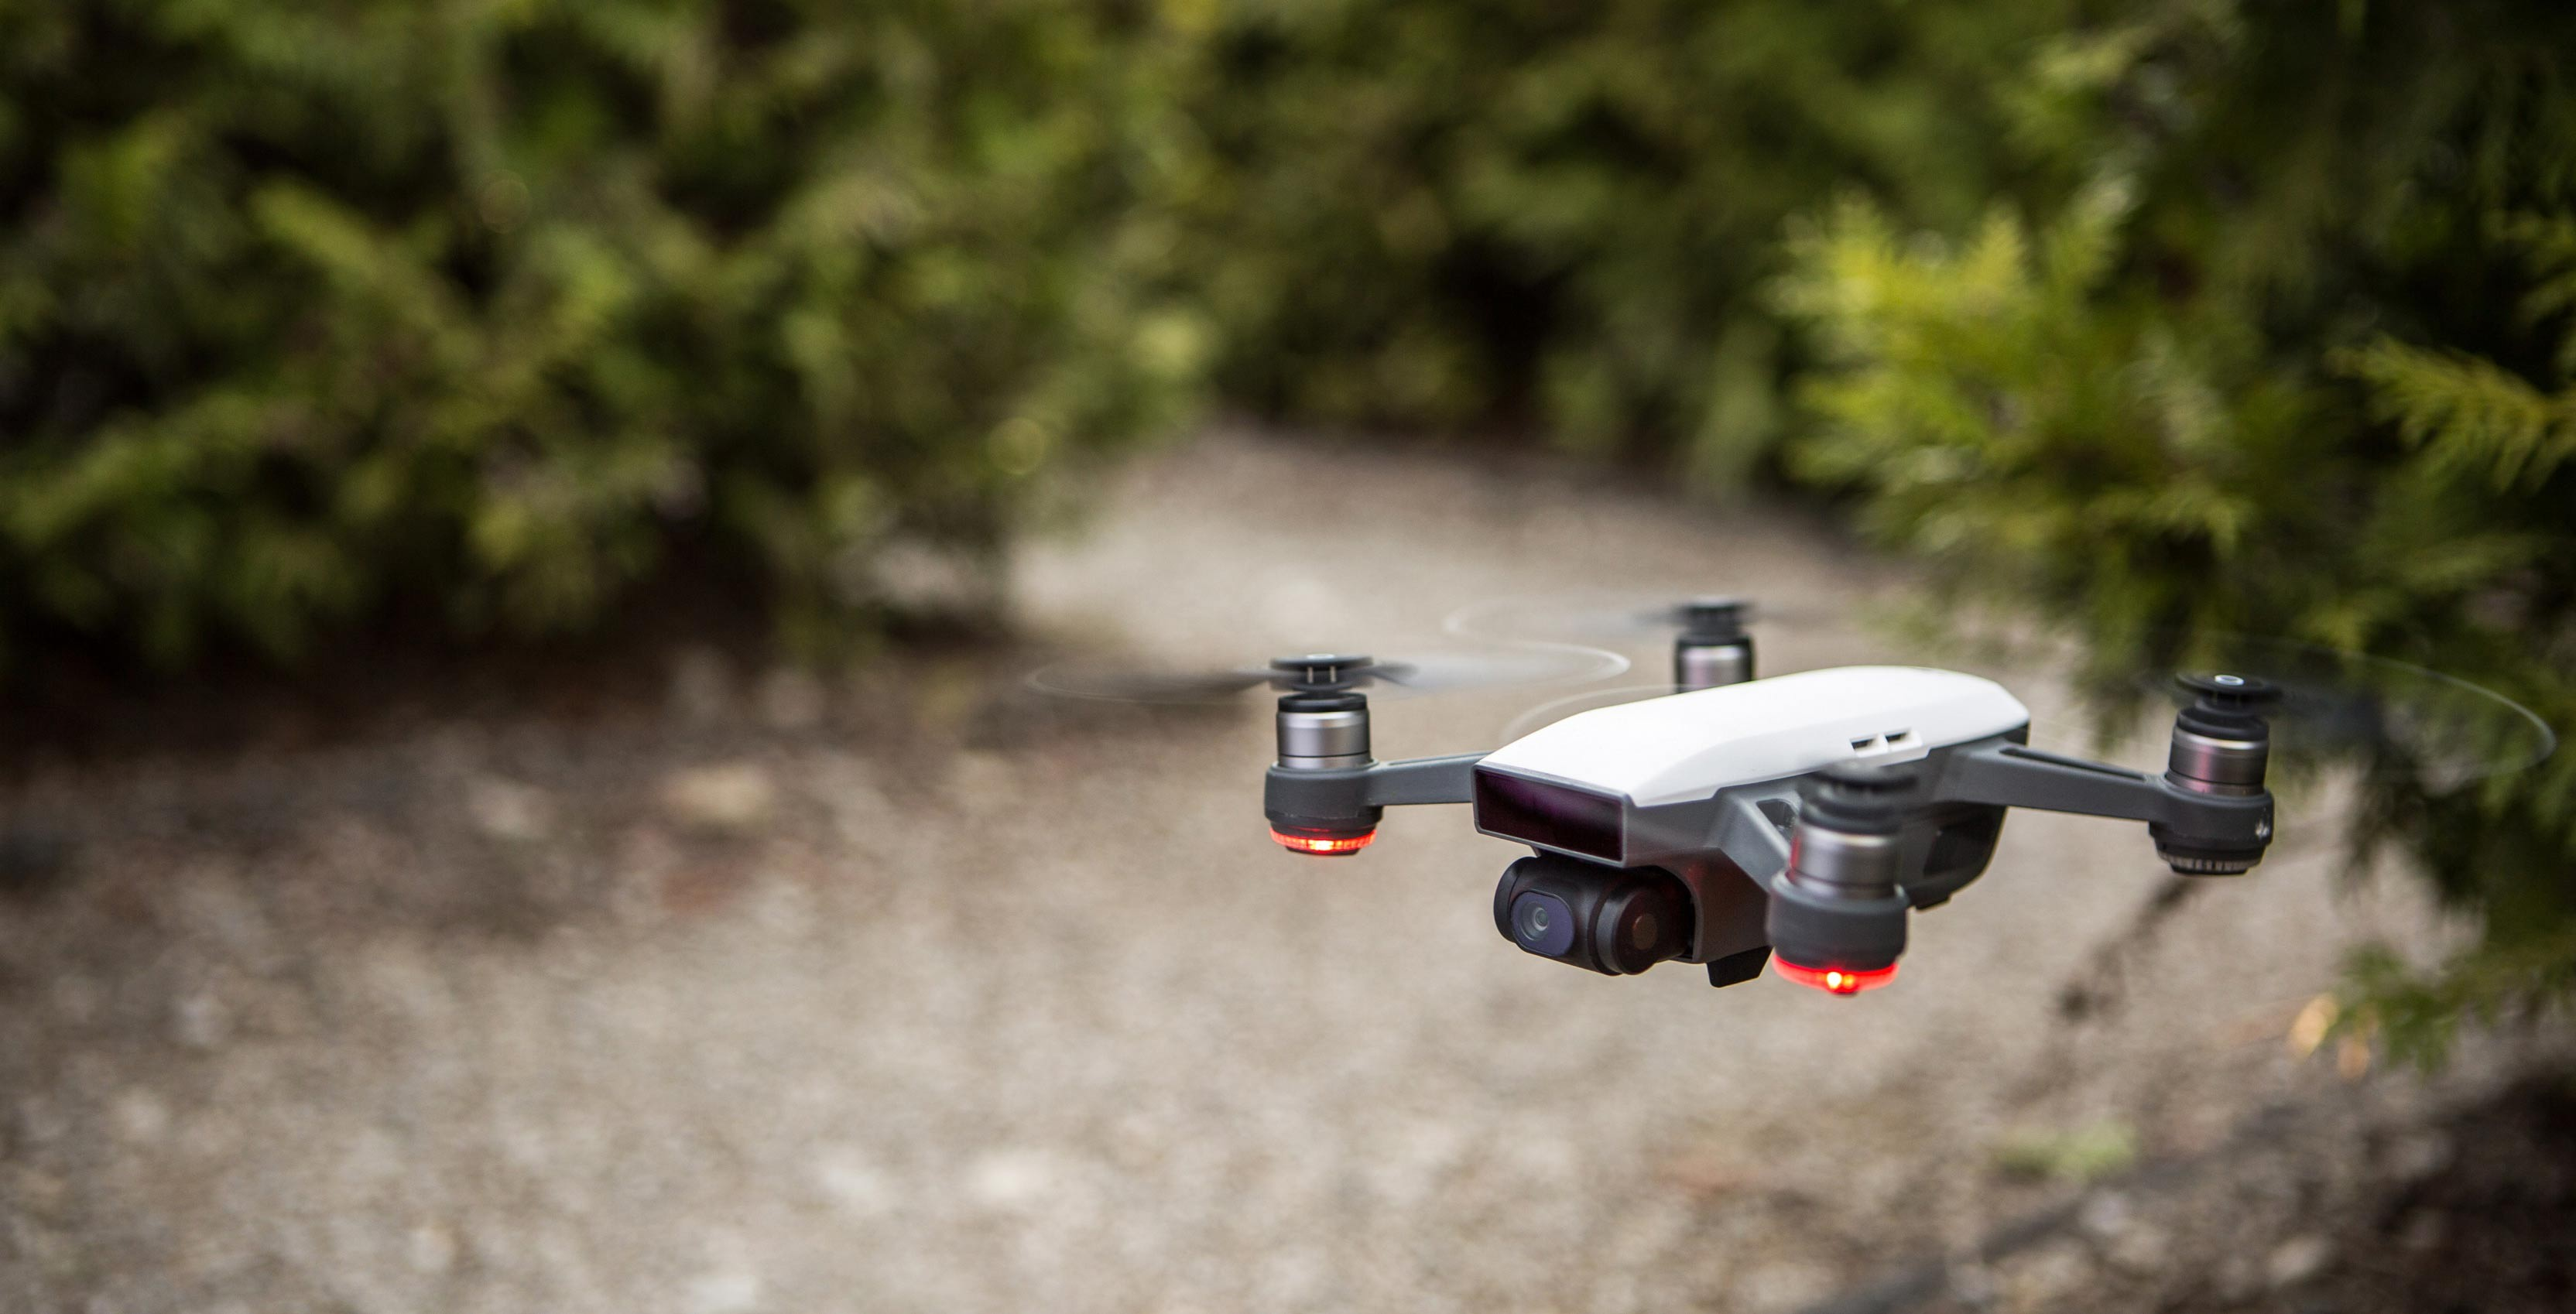 drones in the us military with Dji Spark Hd 4k Best Drones 13603 on Bliss Uav Airport as well avromuseum together with Dji Spark Hd 4k Best Drones 13603 besides File MQ 8B Fire Scout side besides F 4 Phantom Big Fast Heavy Popular War Plane.